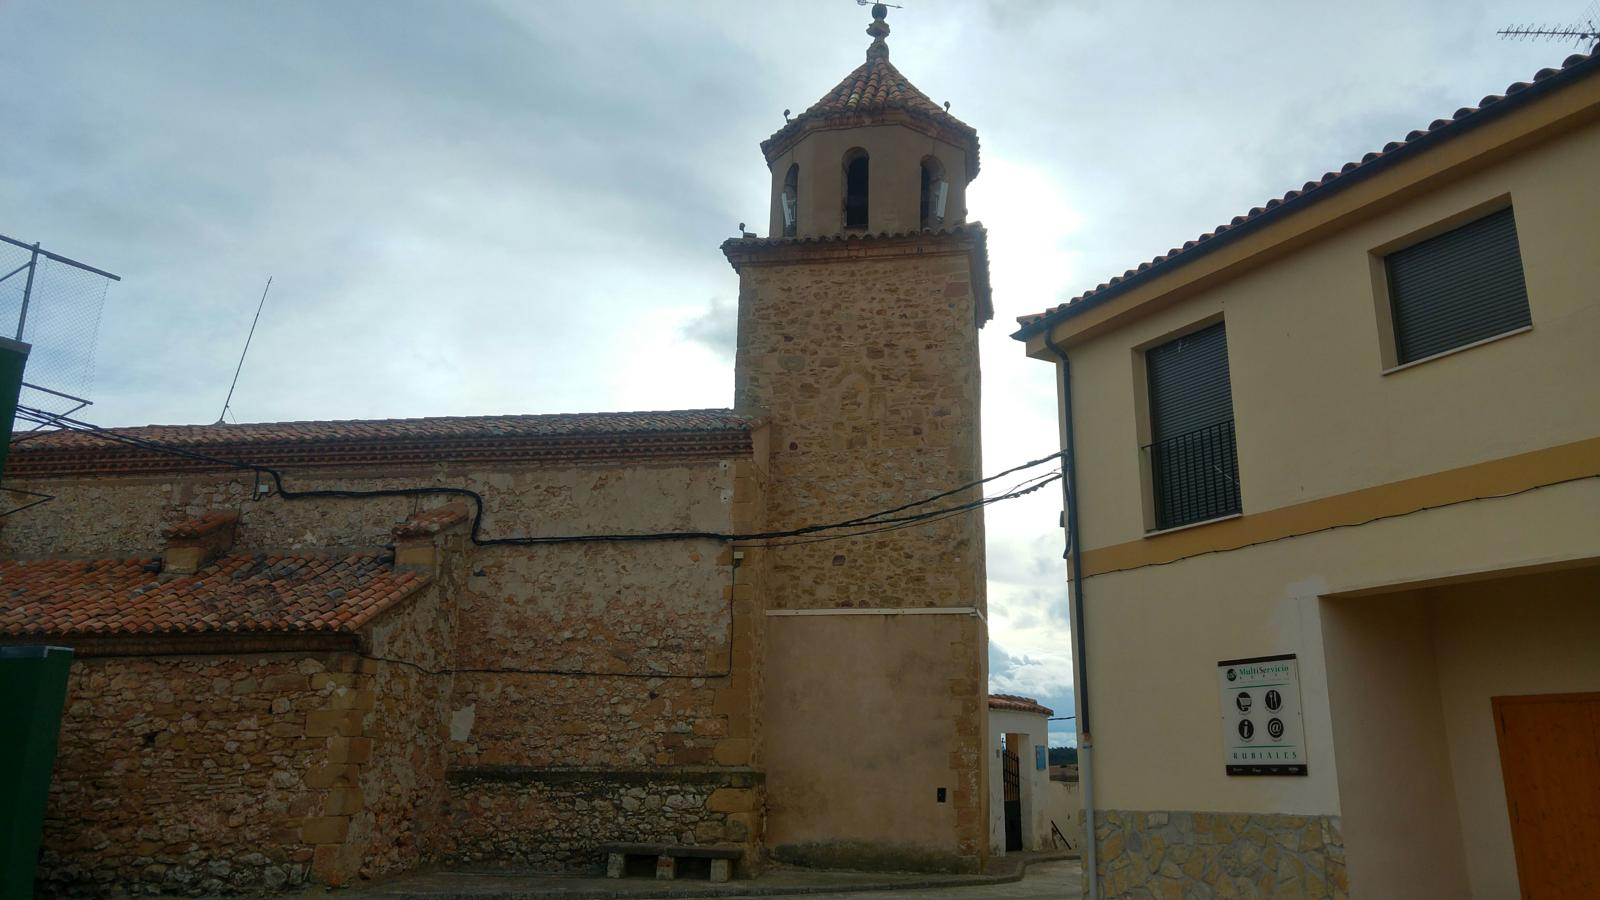 Photo of Villel, Rubiales, Bezas. (recorrido del GR10)